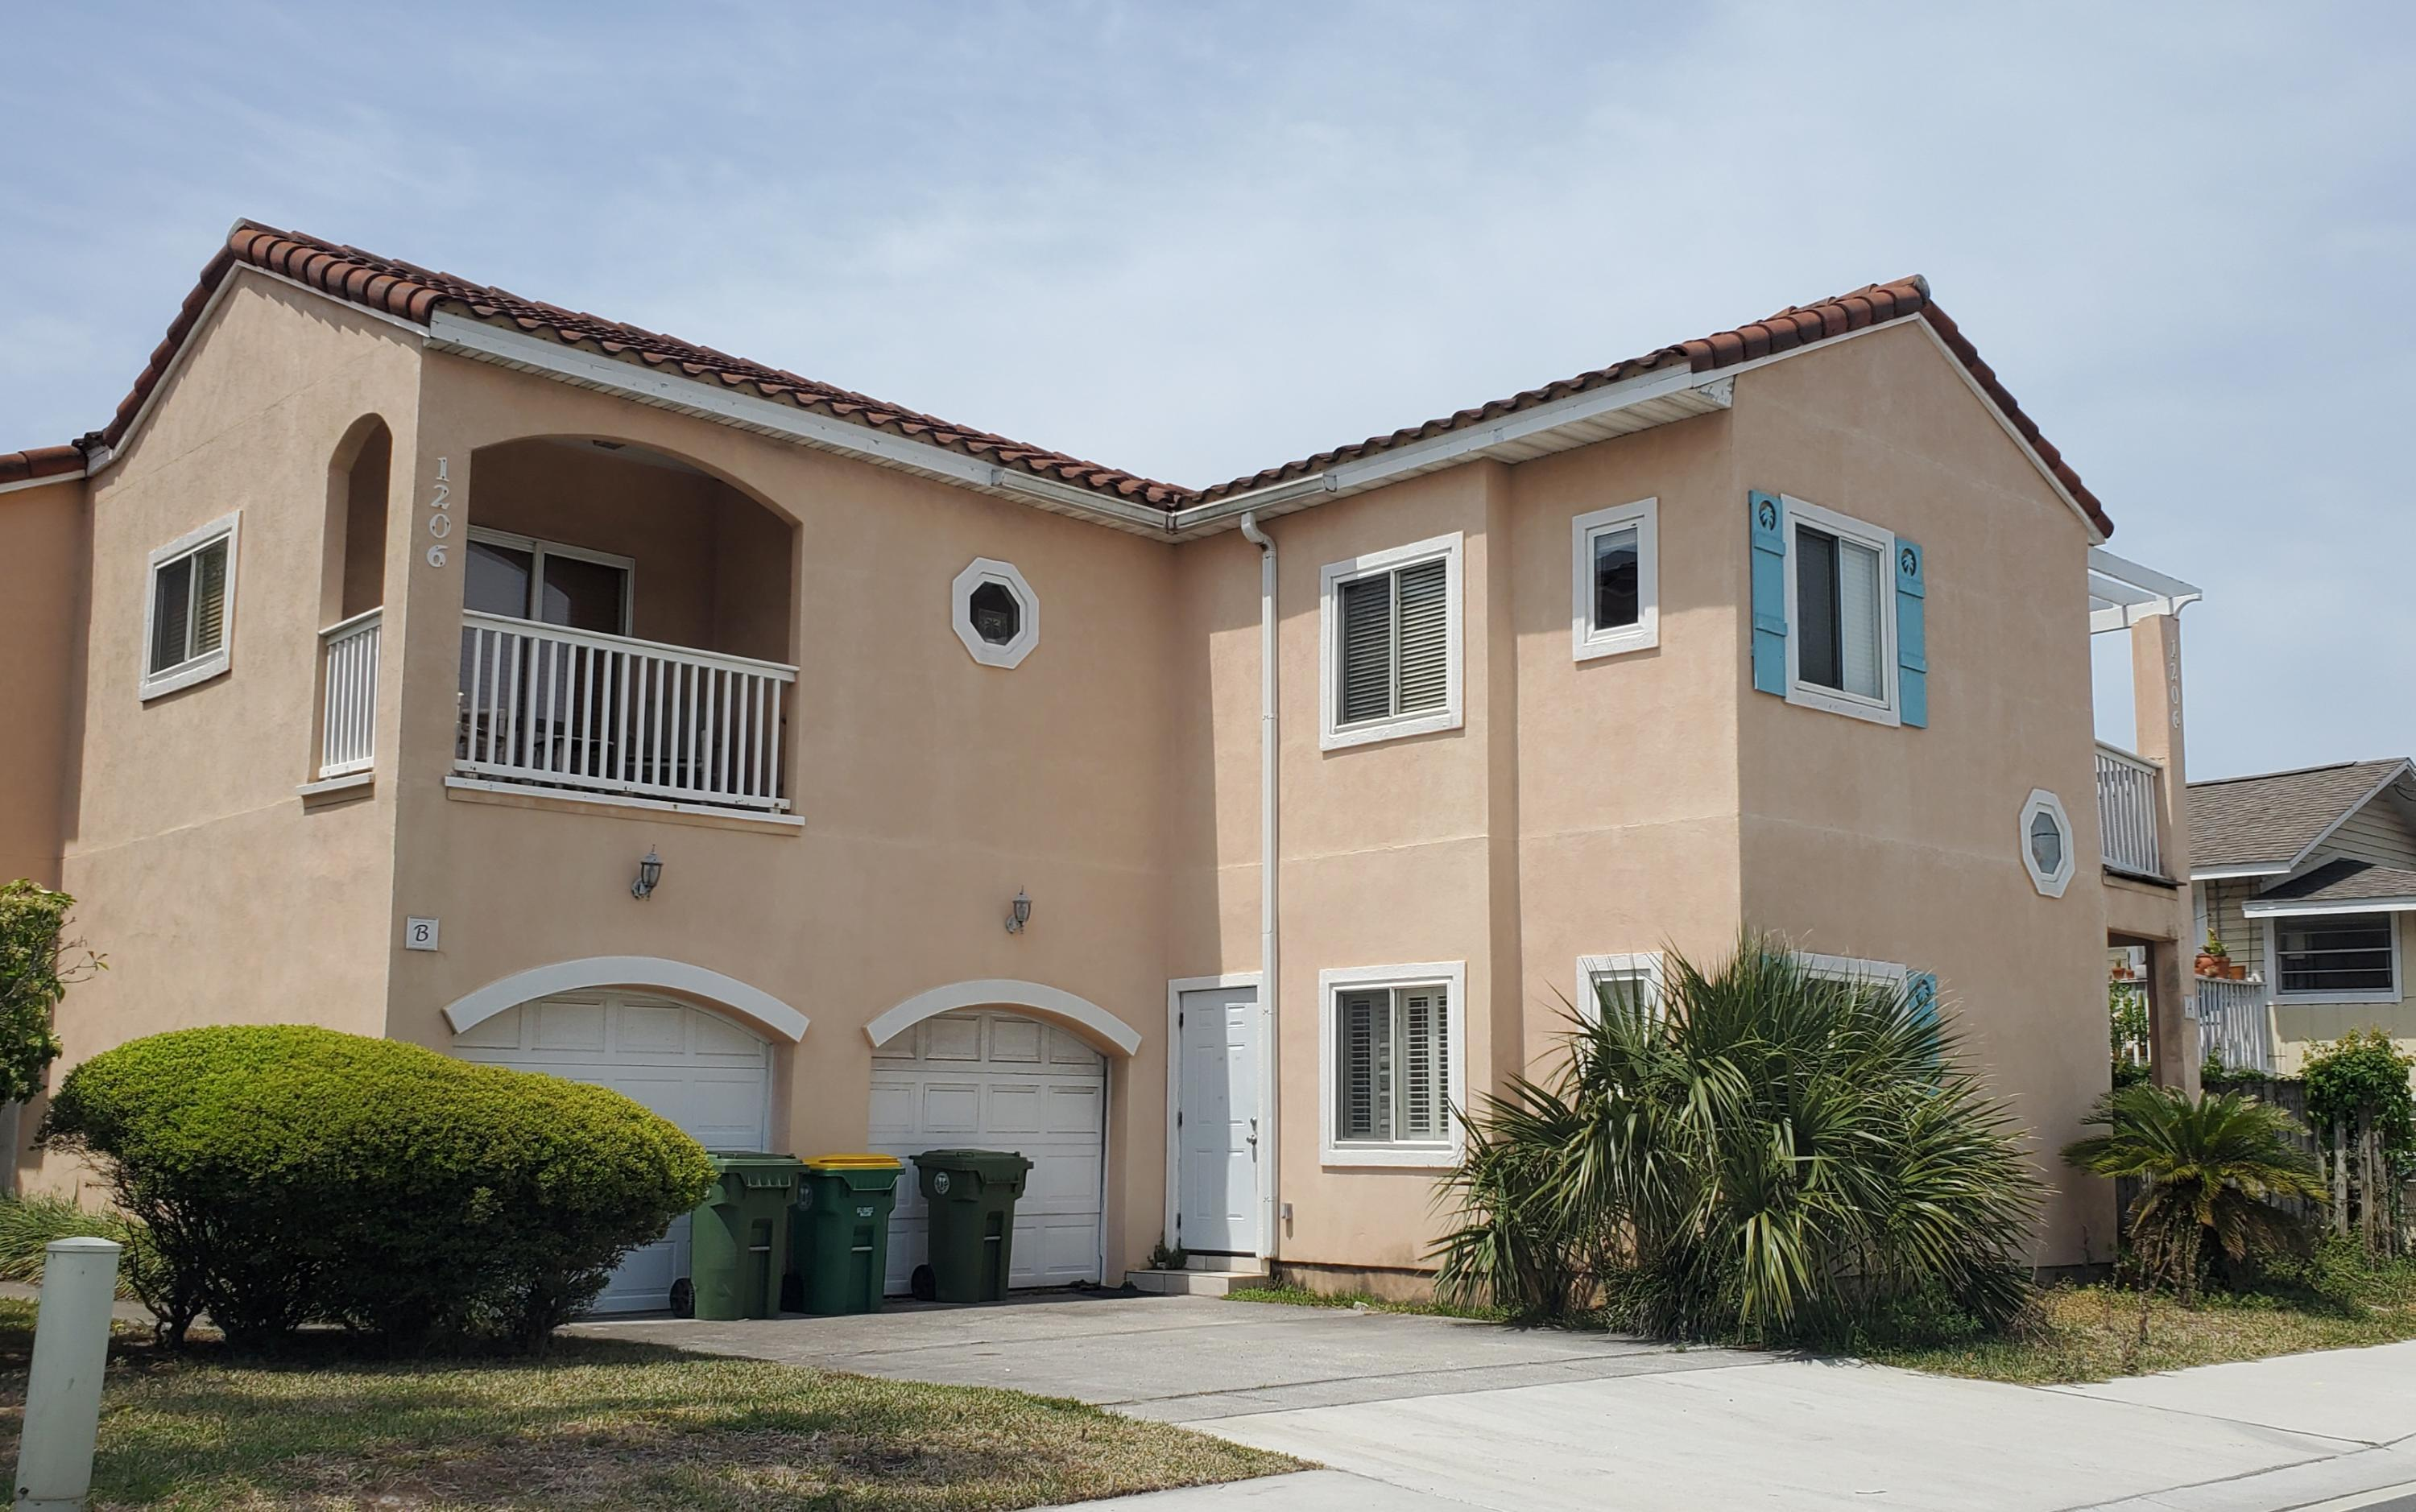 1206 2ND ST, JACKSONVILLE BEACH, Florida 32250, 3 Bedrooms Bedrooms, ,3 BathroomsBathrooms,Single Family,For Sale,1206 2ND ST,1105955